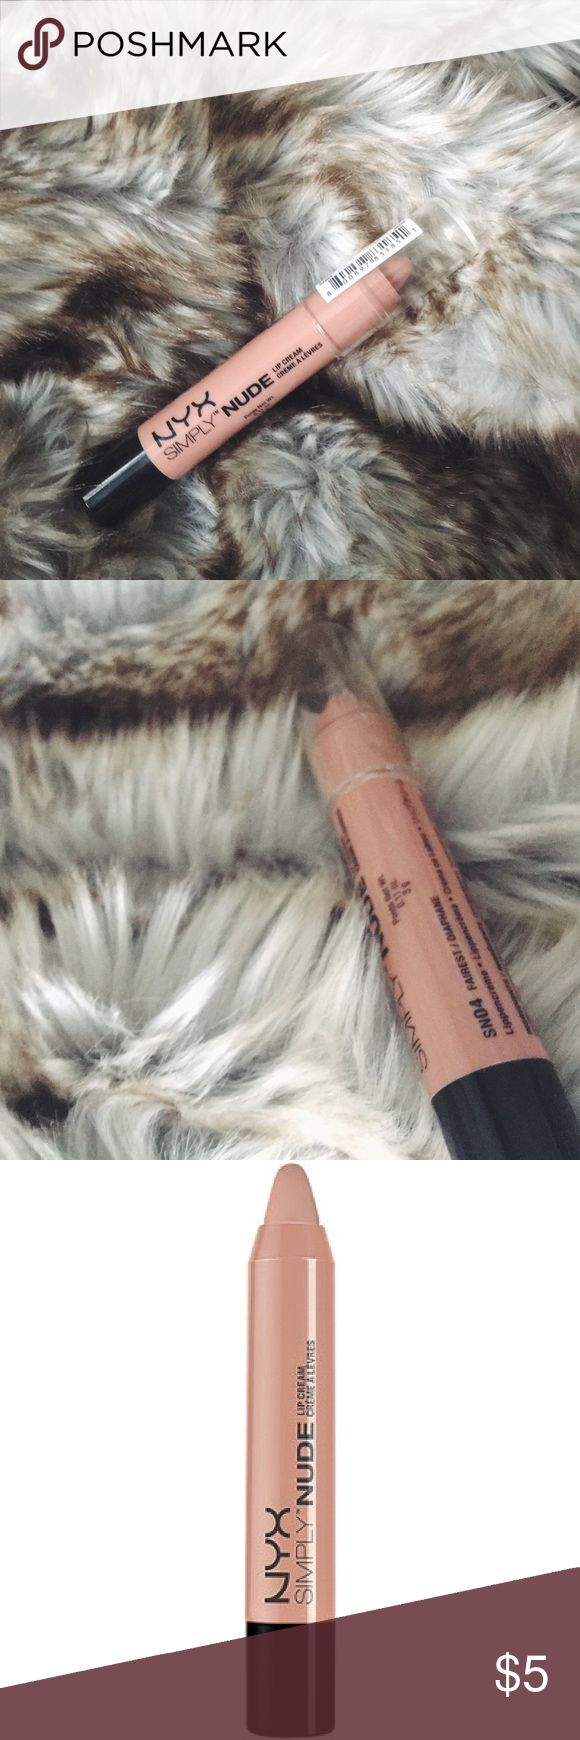 NIP NYX Simply Nude Lip Cream Pencil in Fairest NIP NYX Simply Nude Lip Cream Pencil in Fairest. Bare is beautiful with NYX Cosmetics Simply Nude Lip Creams. Swipe on this velvety and moisturizing cream to leave your lips with a subtle satin finish. NYX Makeup Lipstick